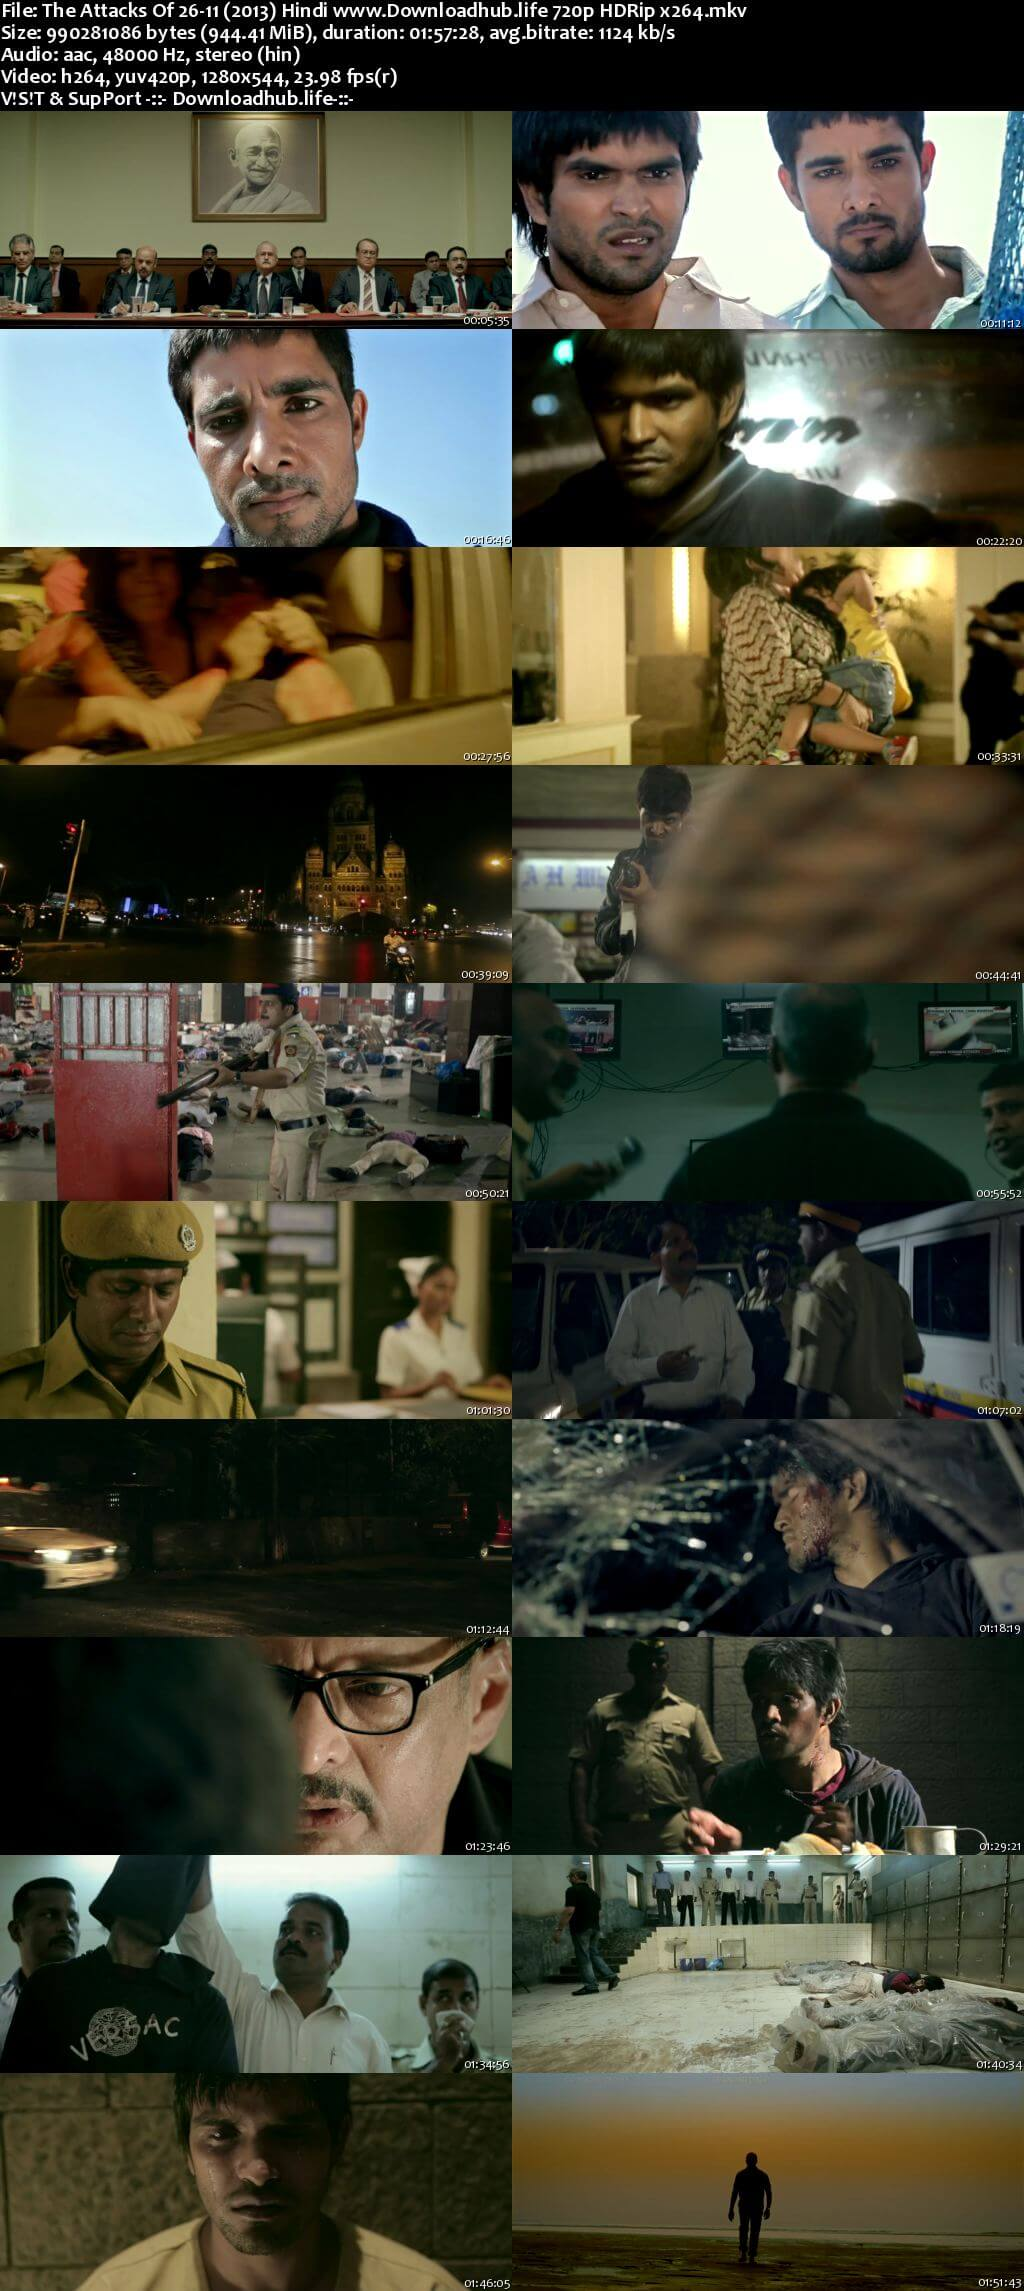 The Attacks of 26/11 2013 Hindi 720p HDRip x264